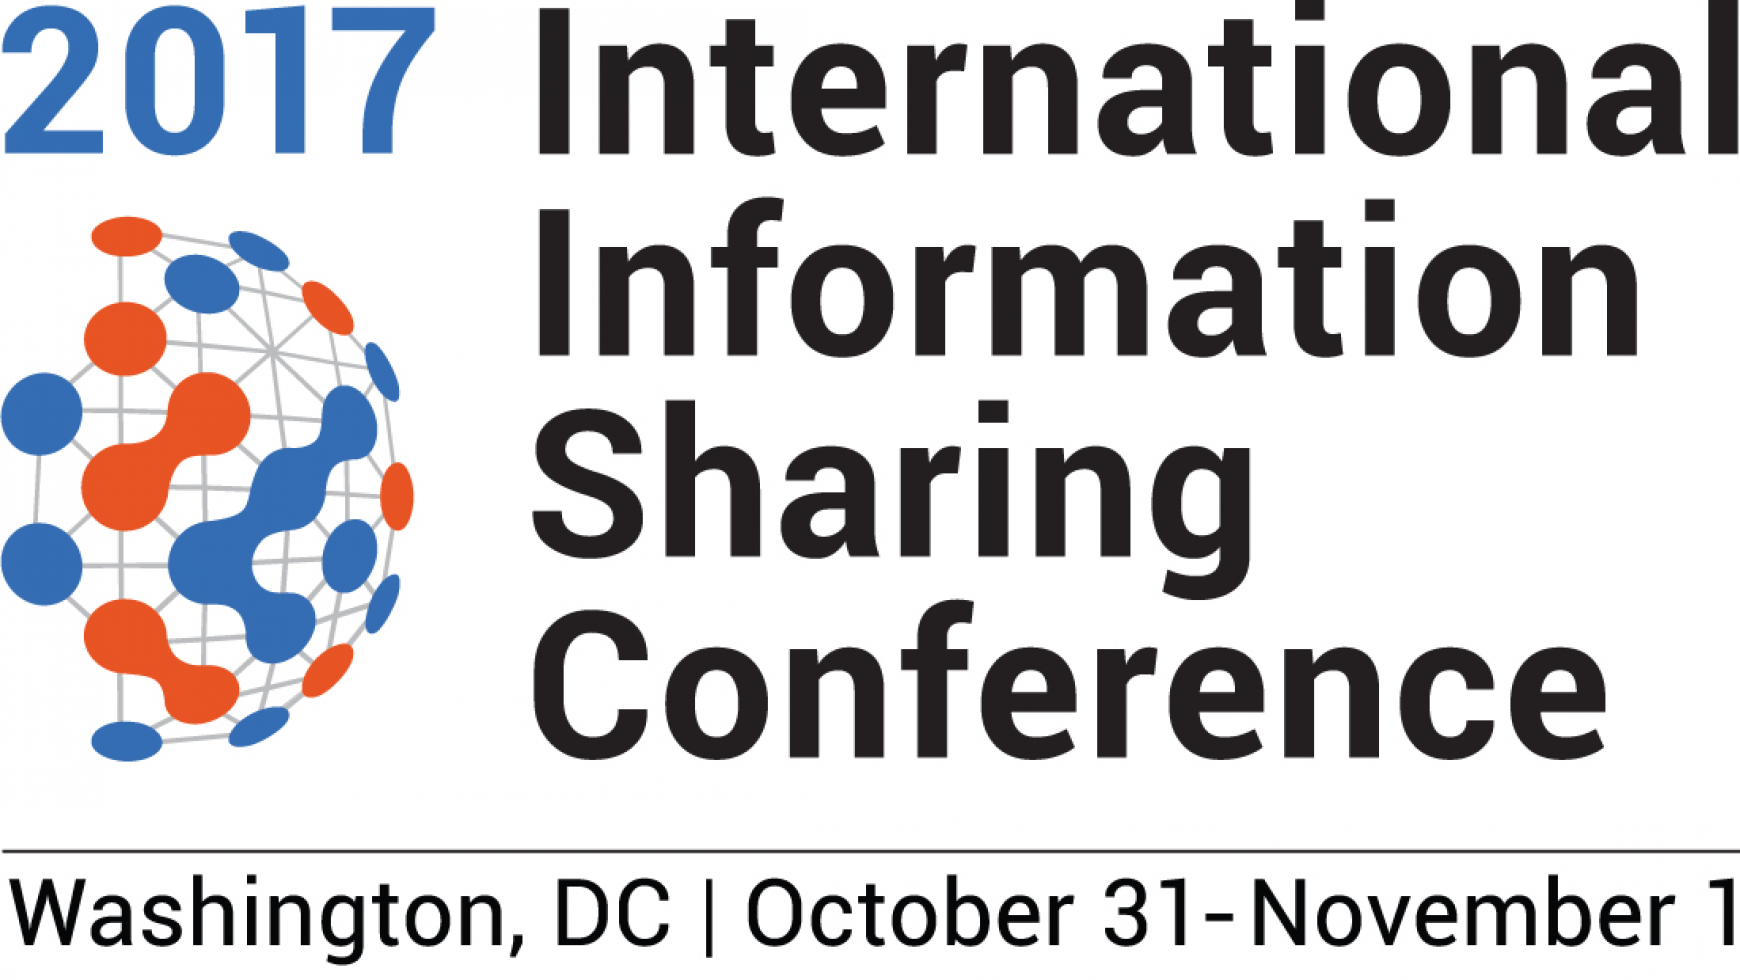 The ISAO SO Announces Inaugural International Information Sharing Conference